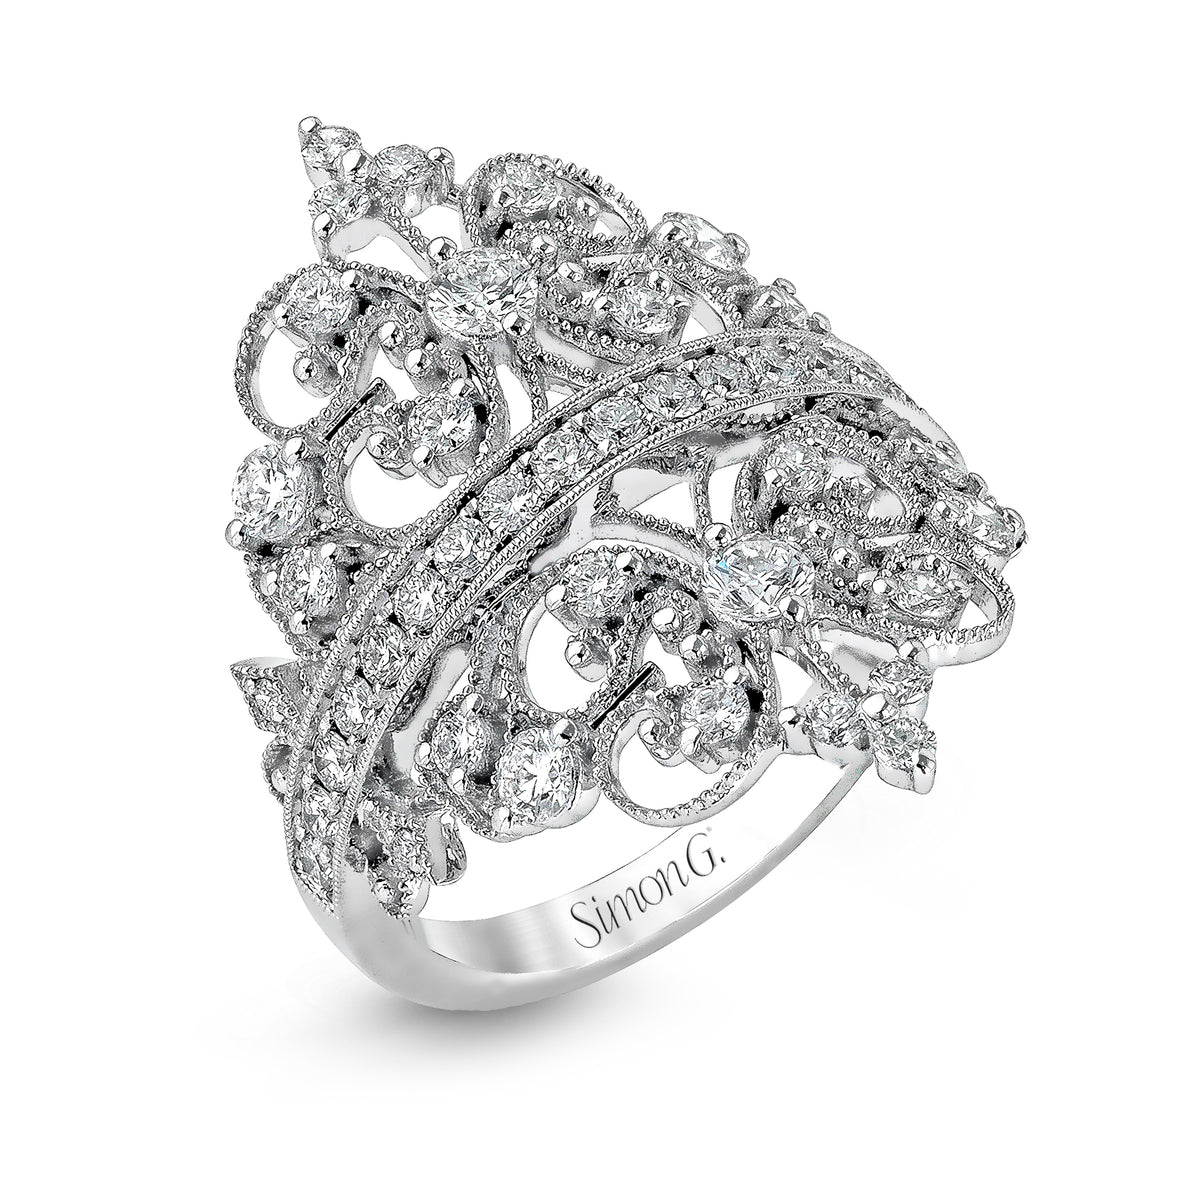 Simon G 18K White Gold Crown Design Ring